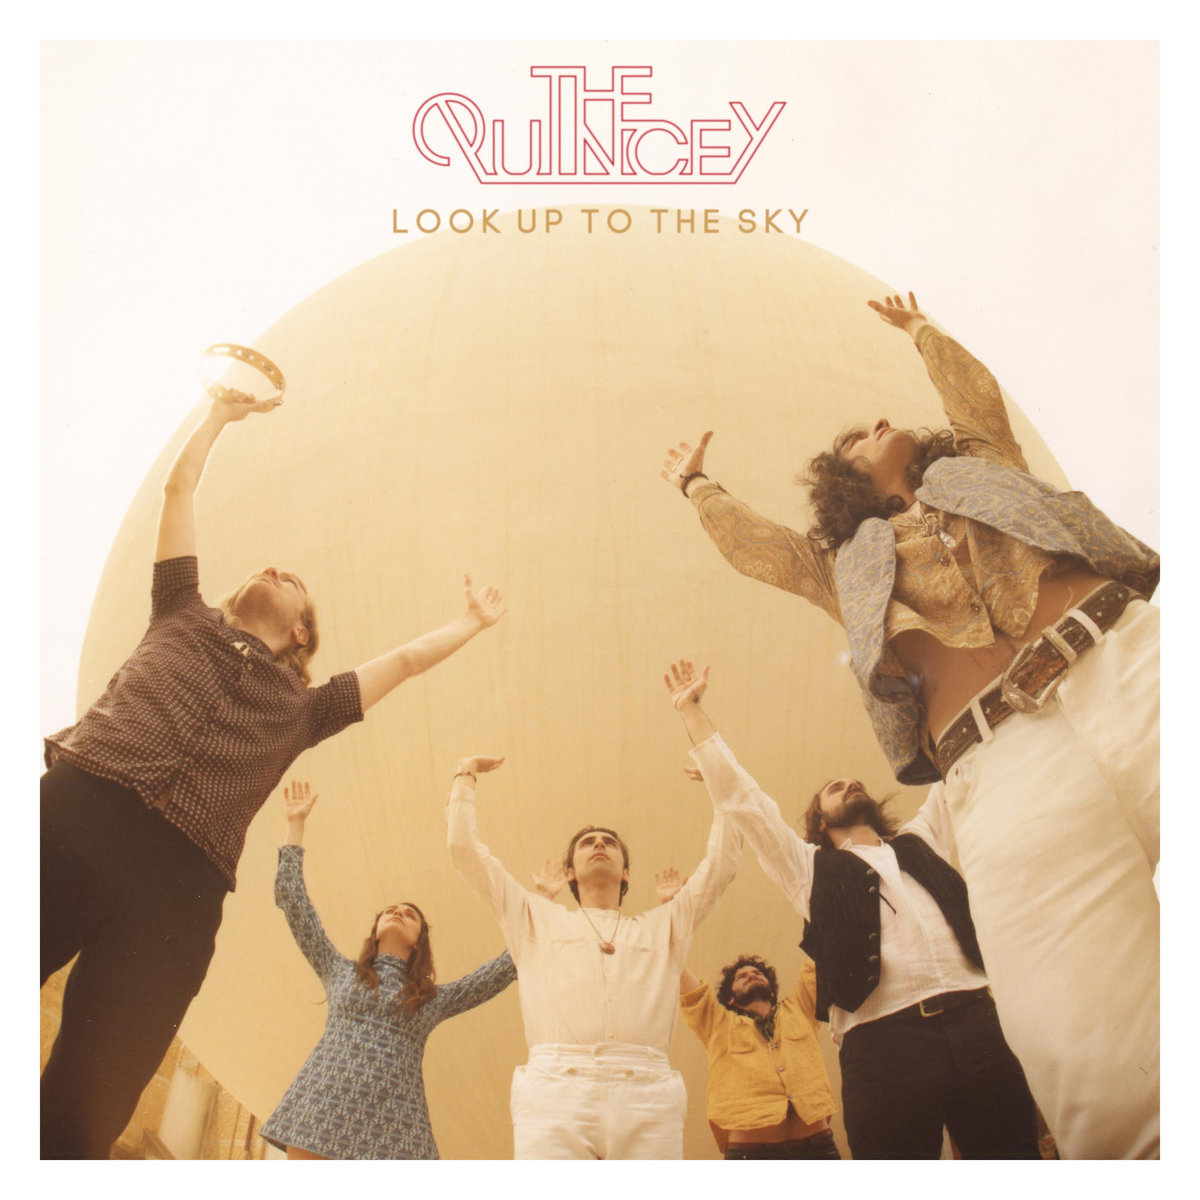 The Quincey - Make It Right @ 'Look Up To The Sky' album (alternative, united kingdom)